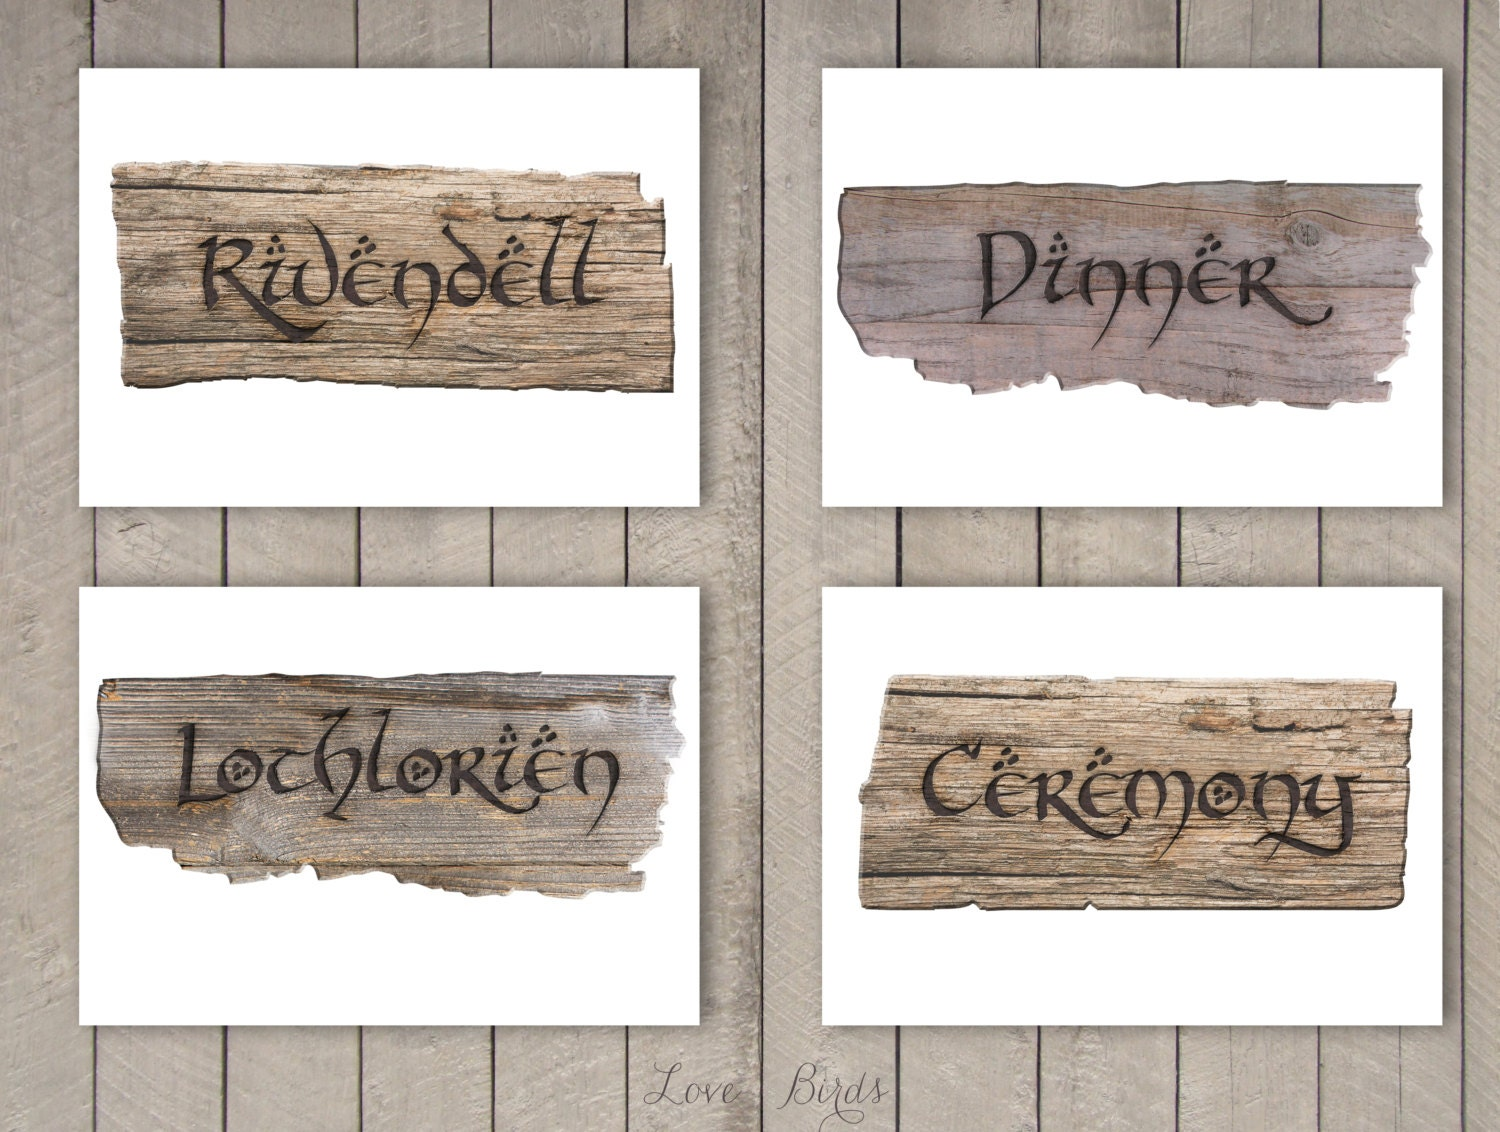 lotr wedding lotr wedding ring Hobbit Lord of the Rings Wedding decoration Sign post DIY 20 pages Digital file